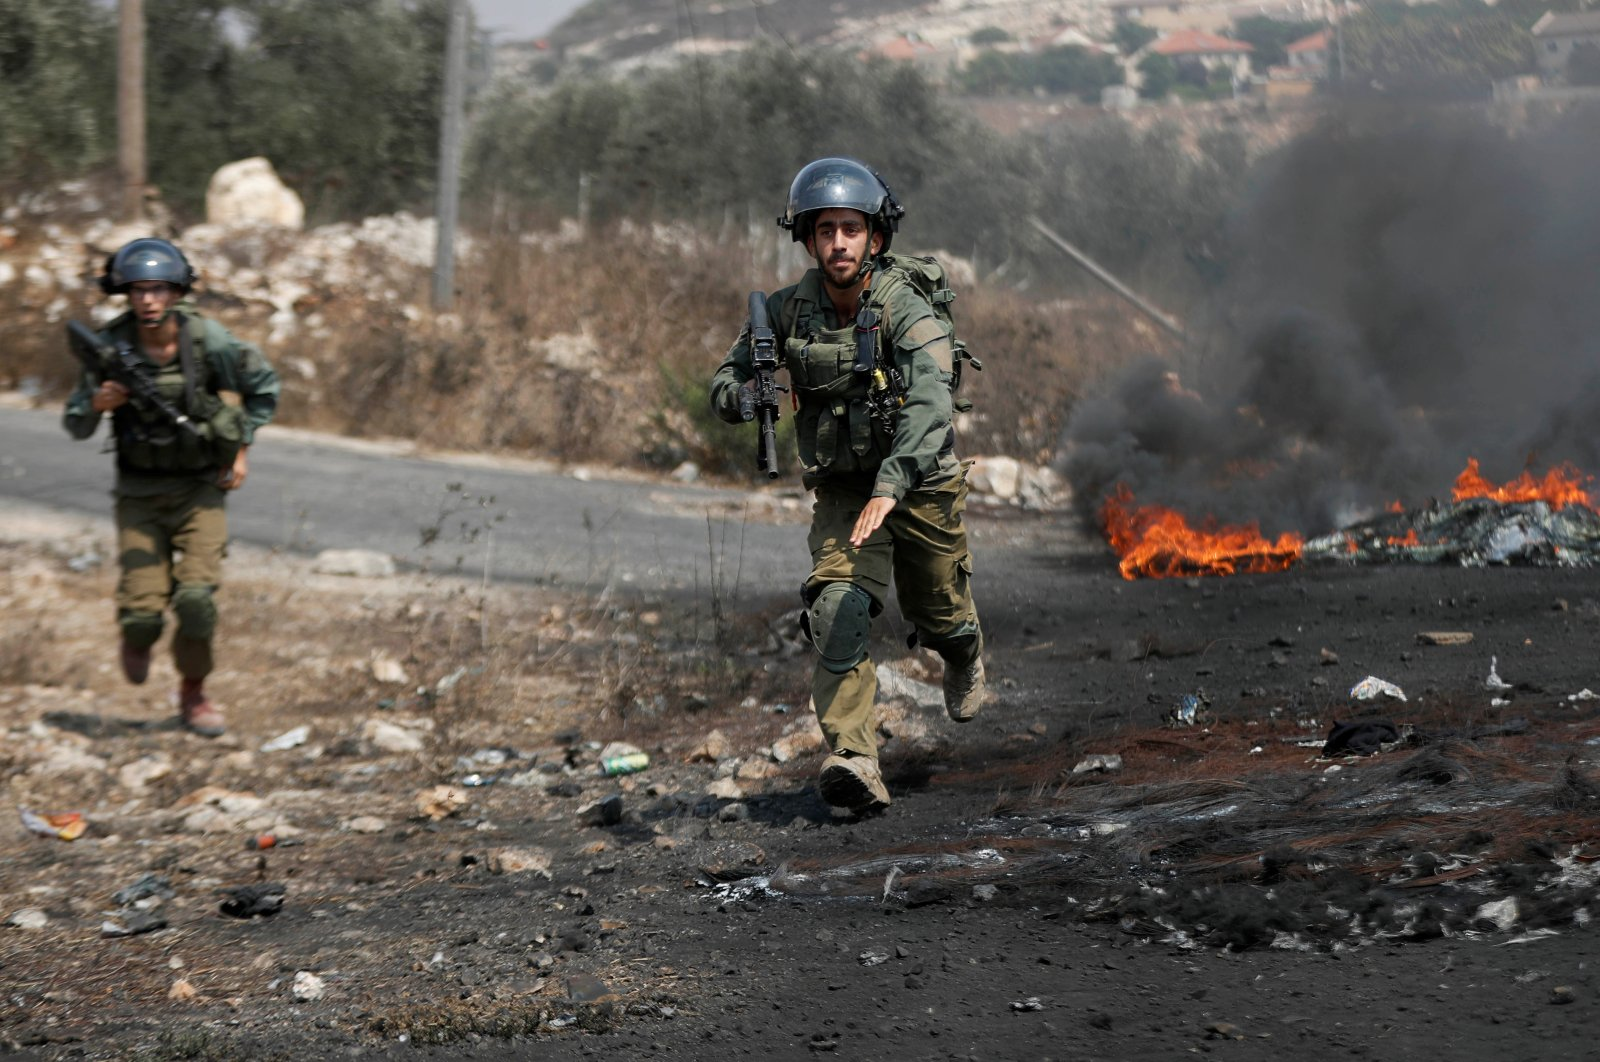 Israeli soldiers run toward demonstrators during a Palestinian protest against Israeli violence, in Kafr Qaddum town in the Israeli-occupied West Bank, Sept.11, 2020. (Reuters Photo)